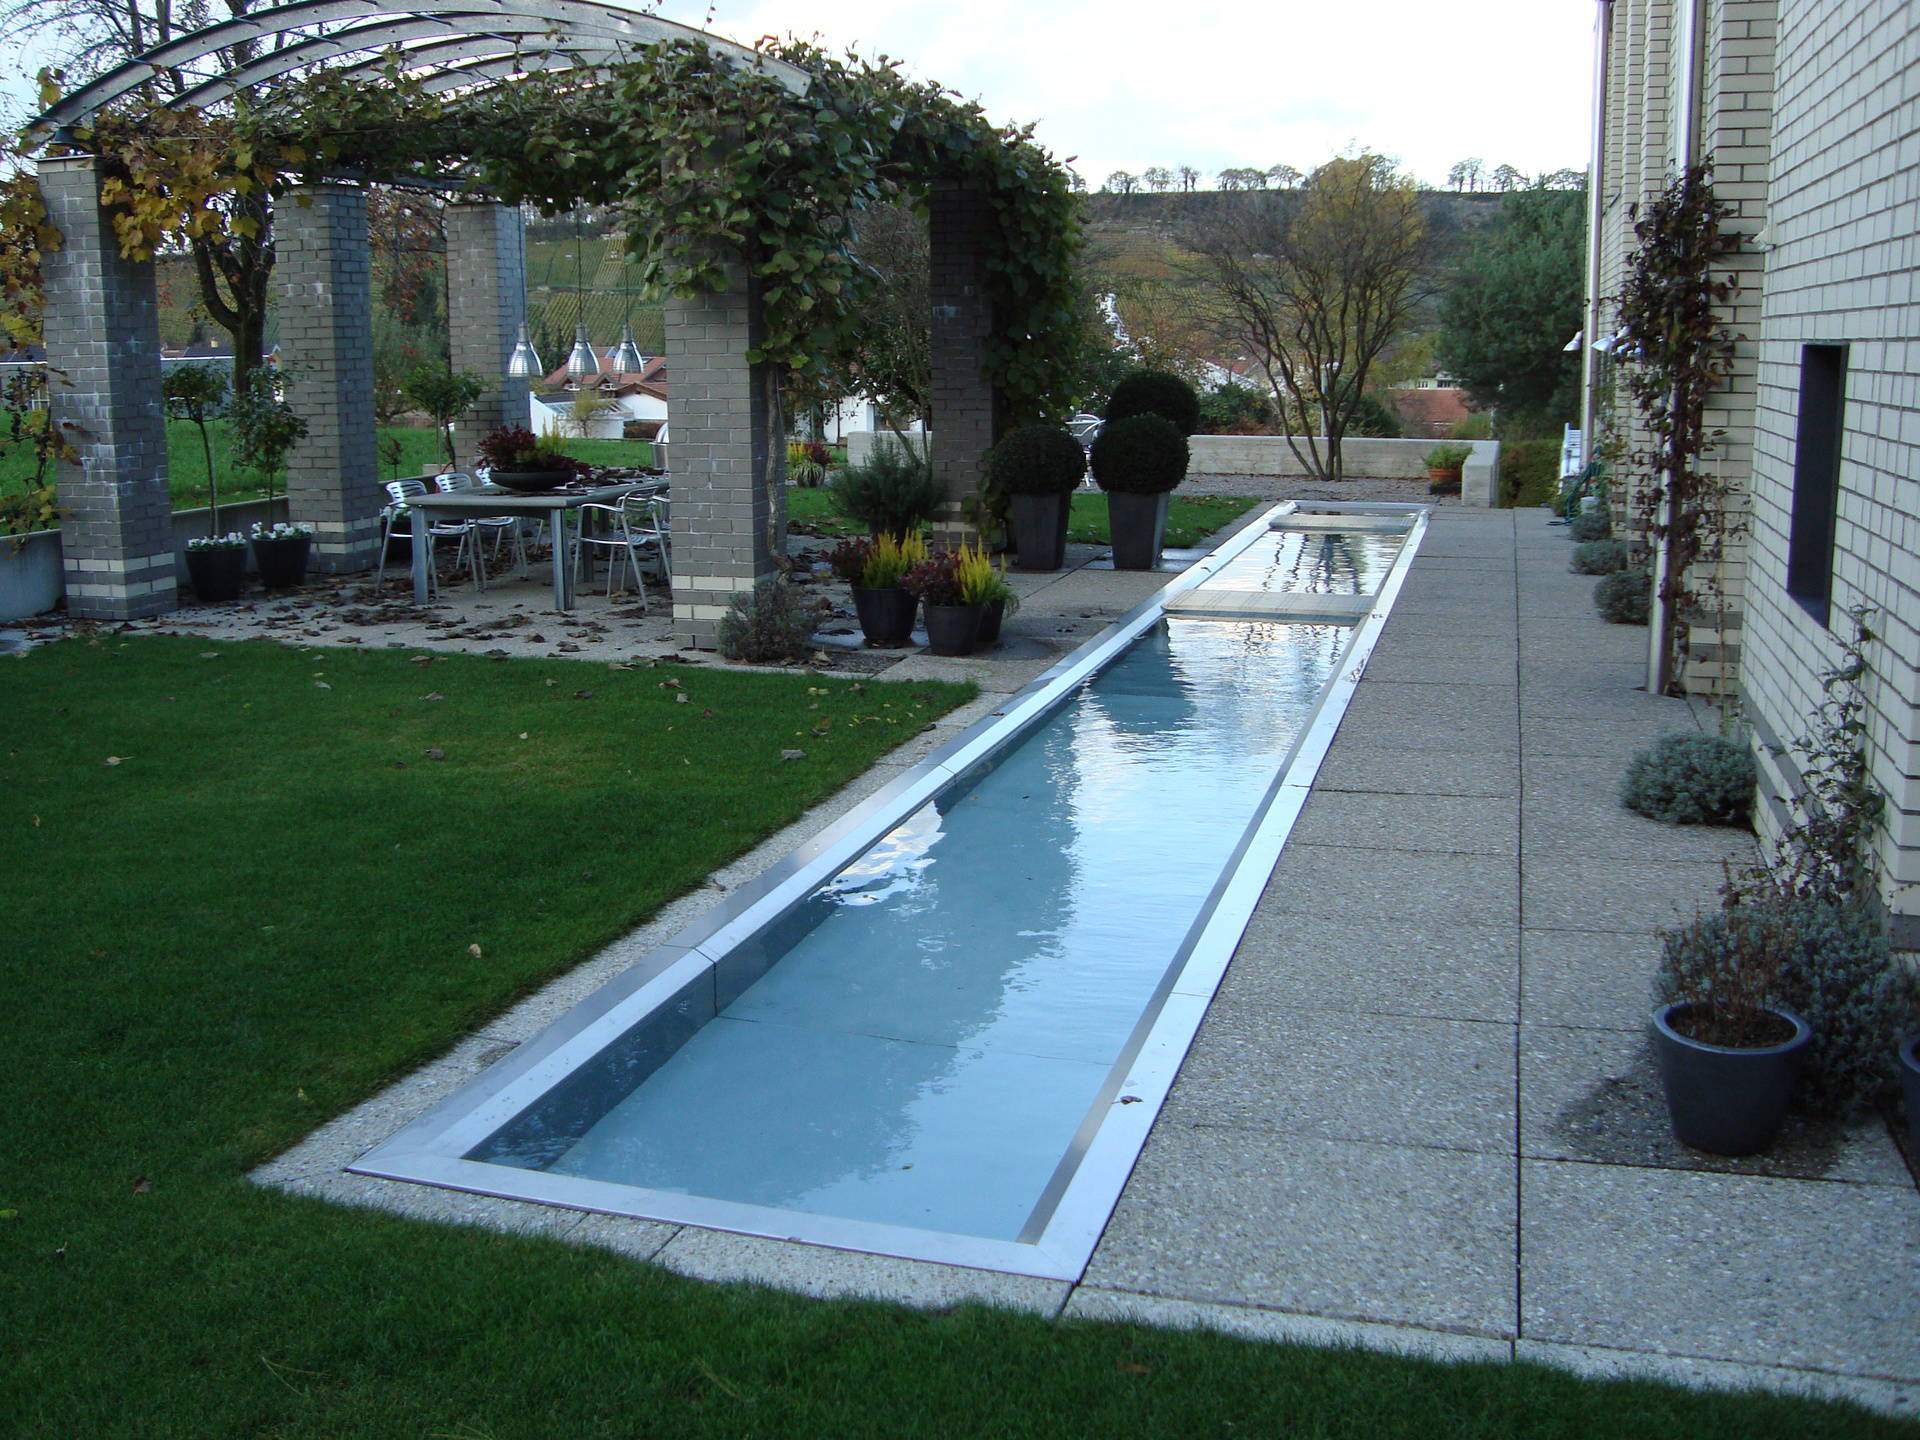 Edelstahl pools in h chster qualit t ibatec ag - Stahl swimmingpool ...